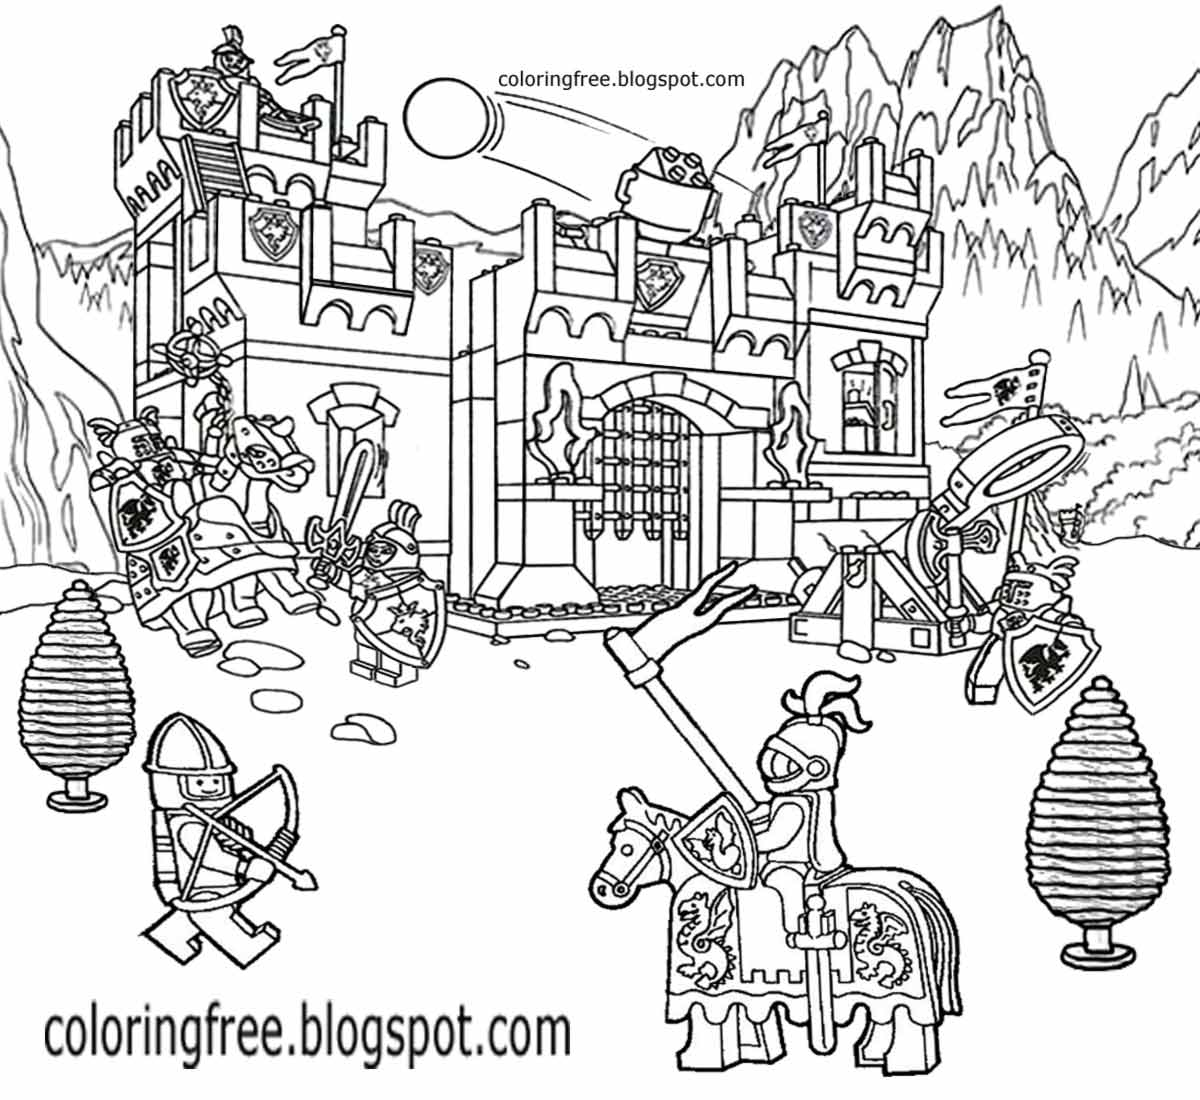 lego city drawing free coloring pages printable pictures to color kids city lego drawing